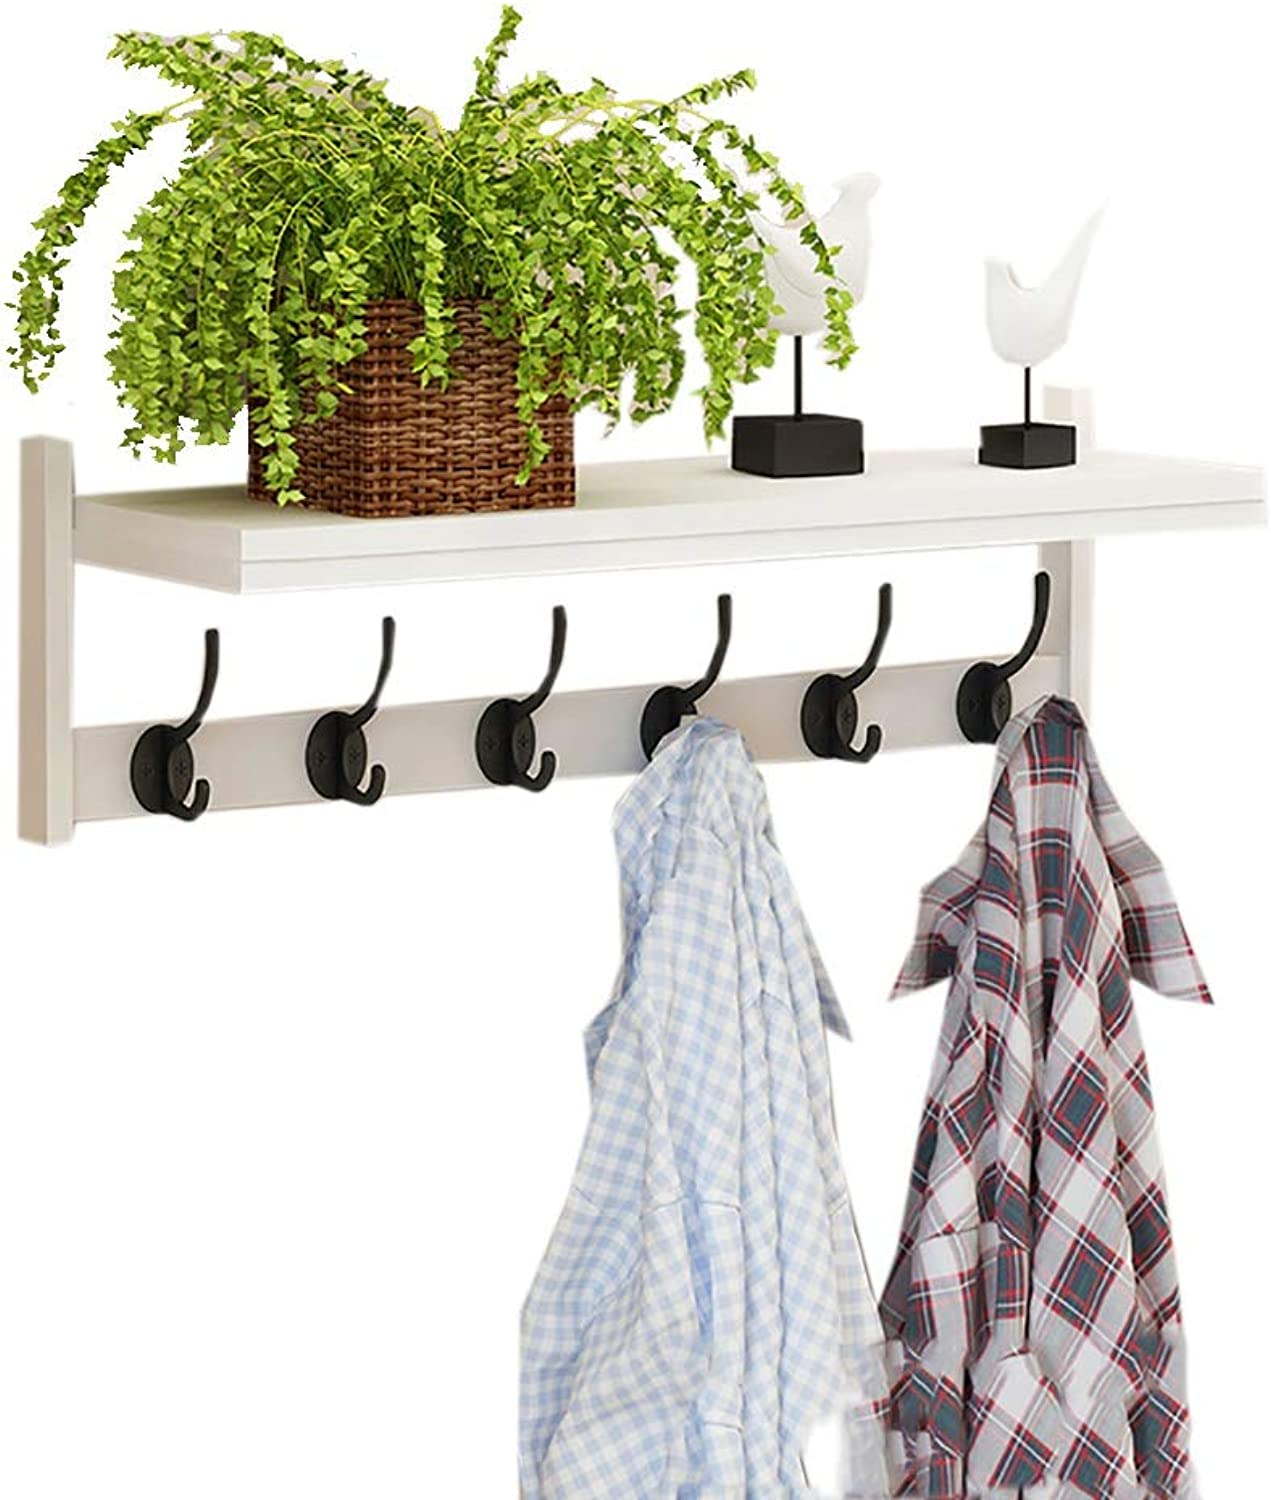 Coat Hook Hanger Wall Hanging Multifunctional Bedroom Coat Rack Living Room Rack Hook (color   A)